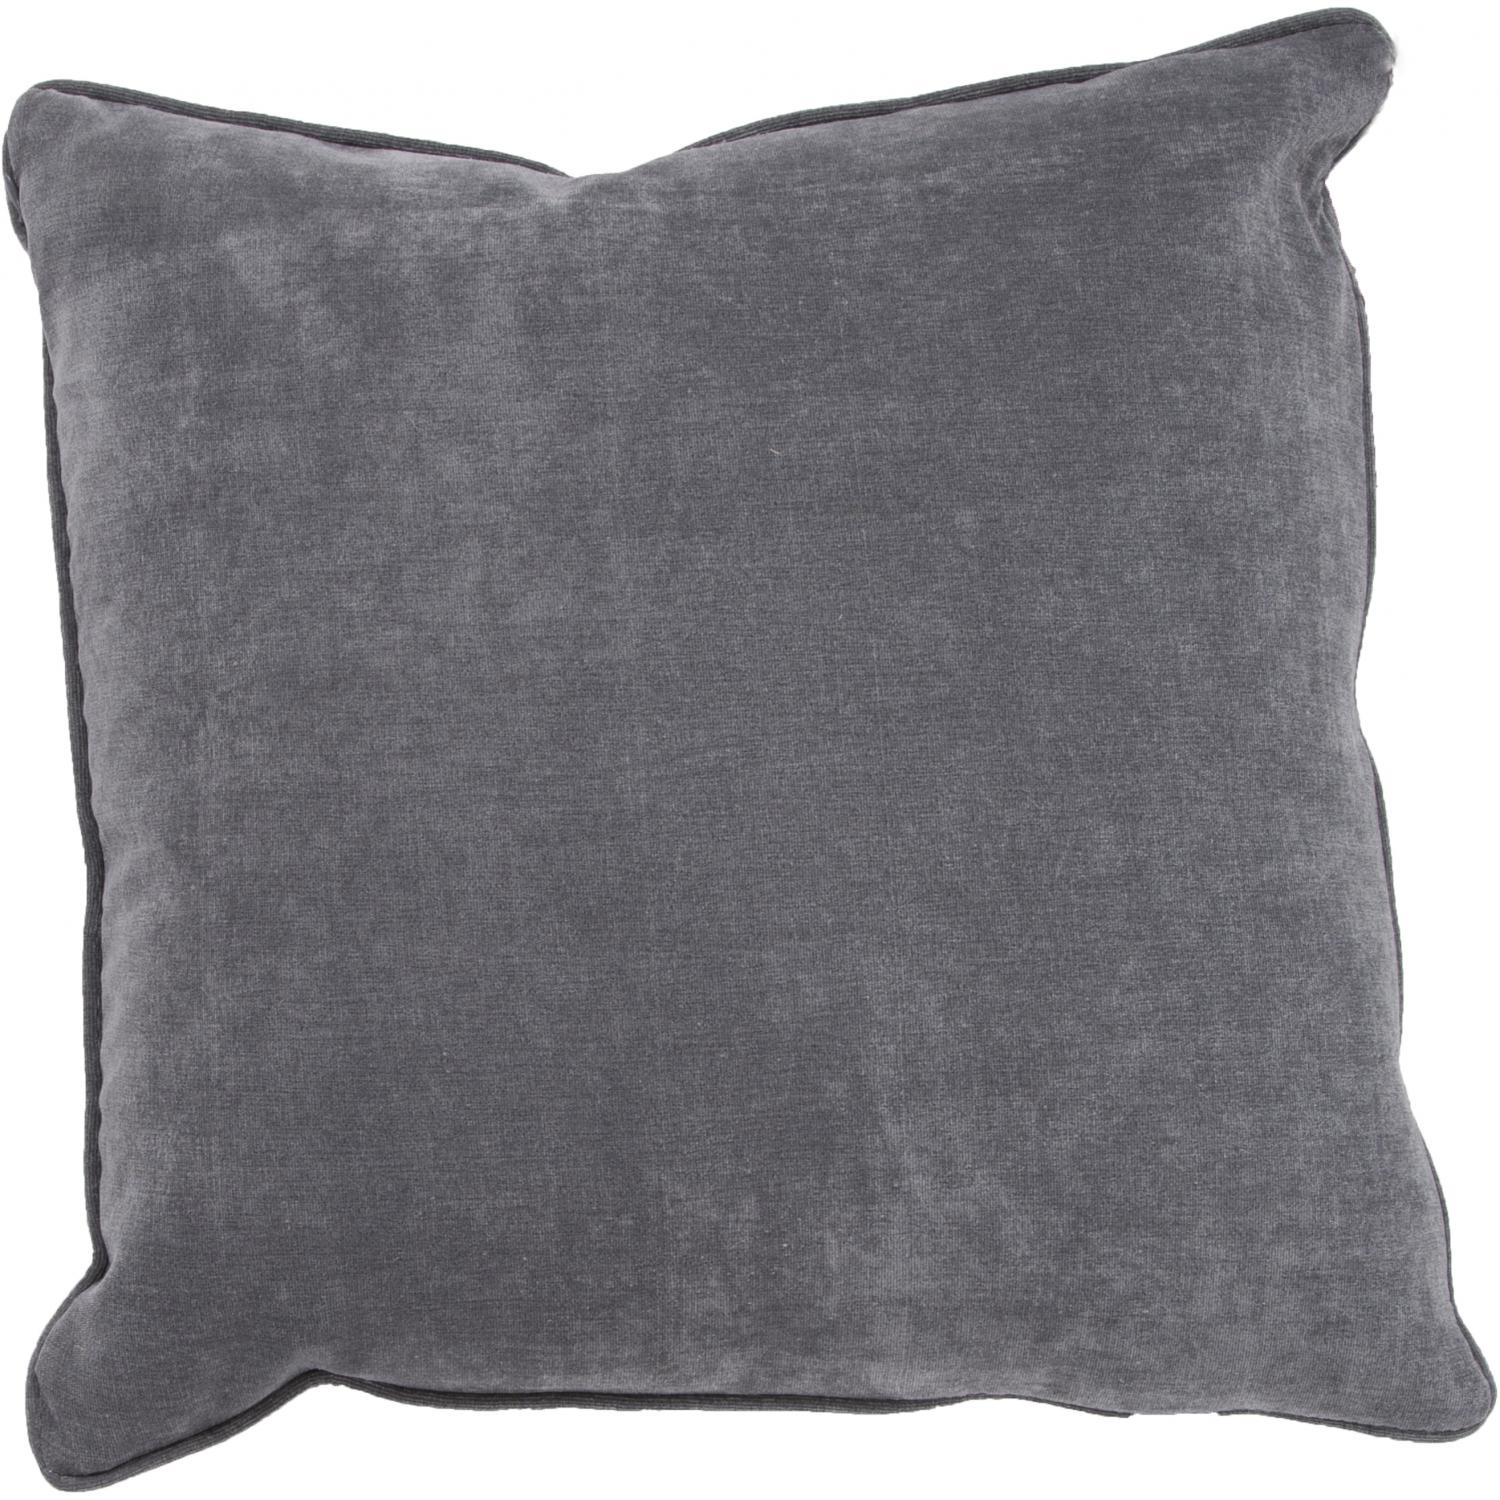 Picture of Jaipur Rugs Allure 20 X 20 Outdoor Pillow - Gray